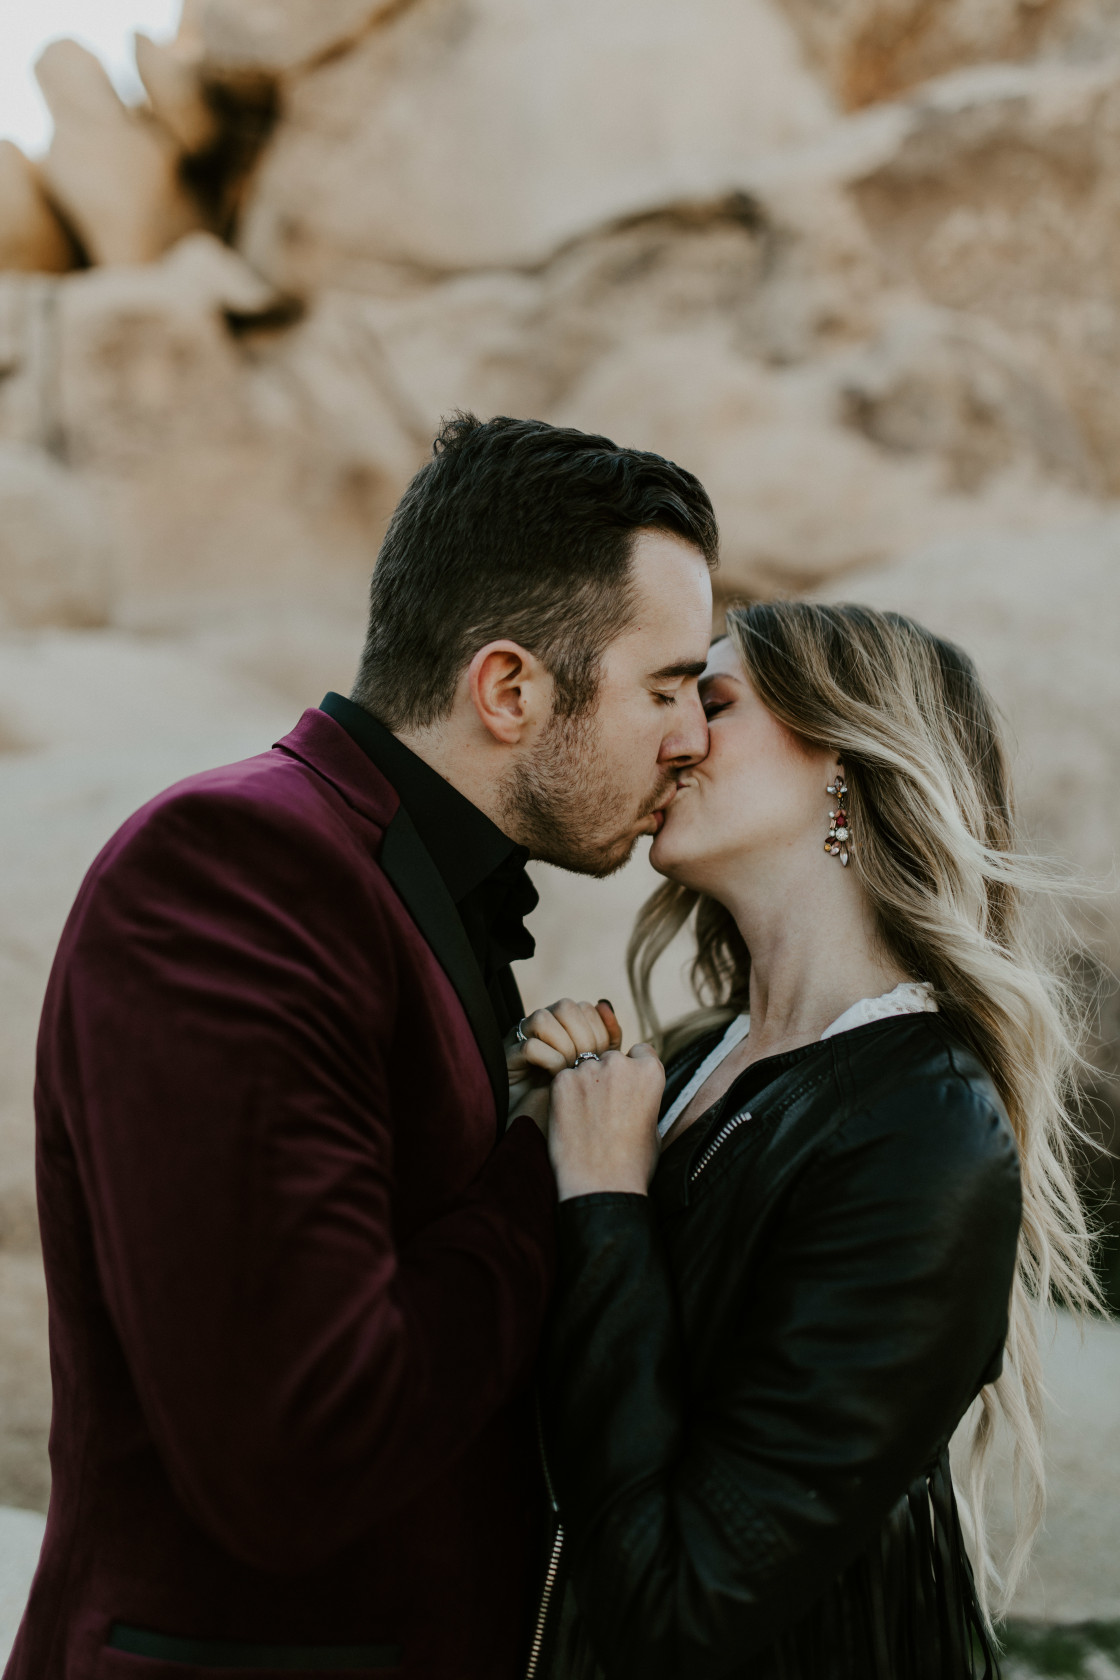 Alyssa and Jeremy go in for a kiss at Joshua Tree National Park, CA Elopement wedding photography at Joshua Tree National Park by Sienna Plus Josh.